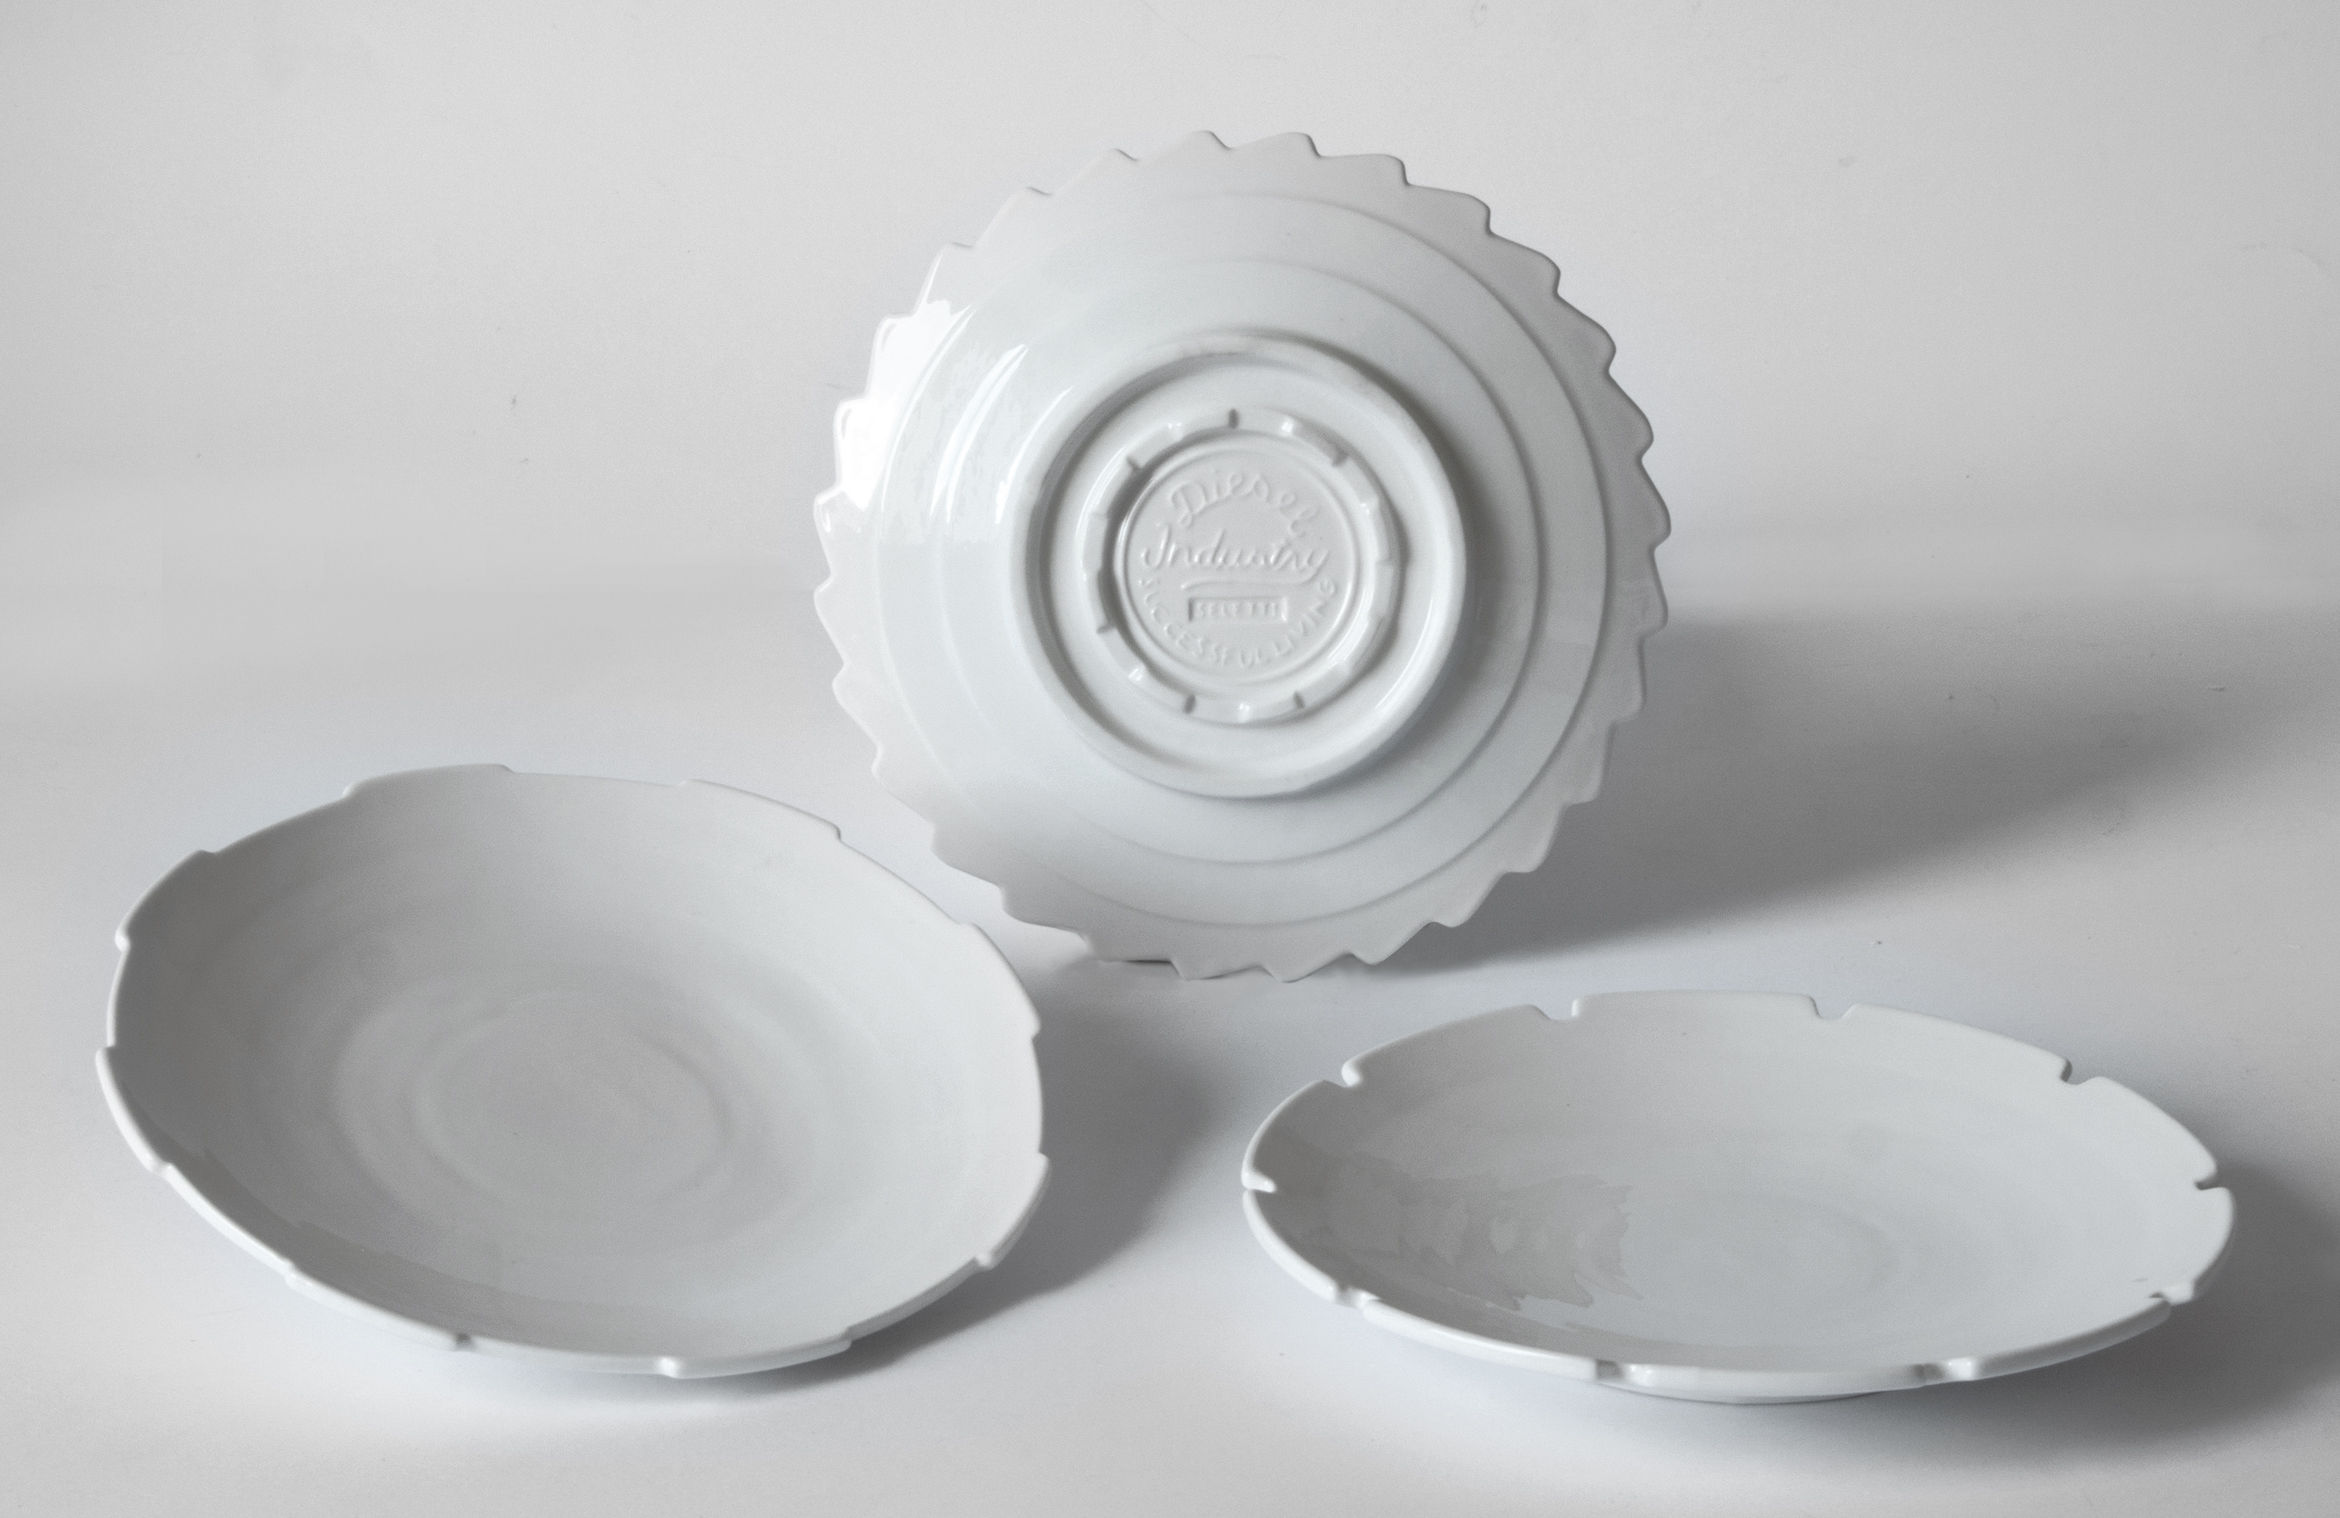 Tableware - Plates - Machine Collection Dessert plate - / Set of 3 - Ø 20 cm by Diesel living with Seletti - White - China